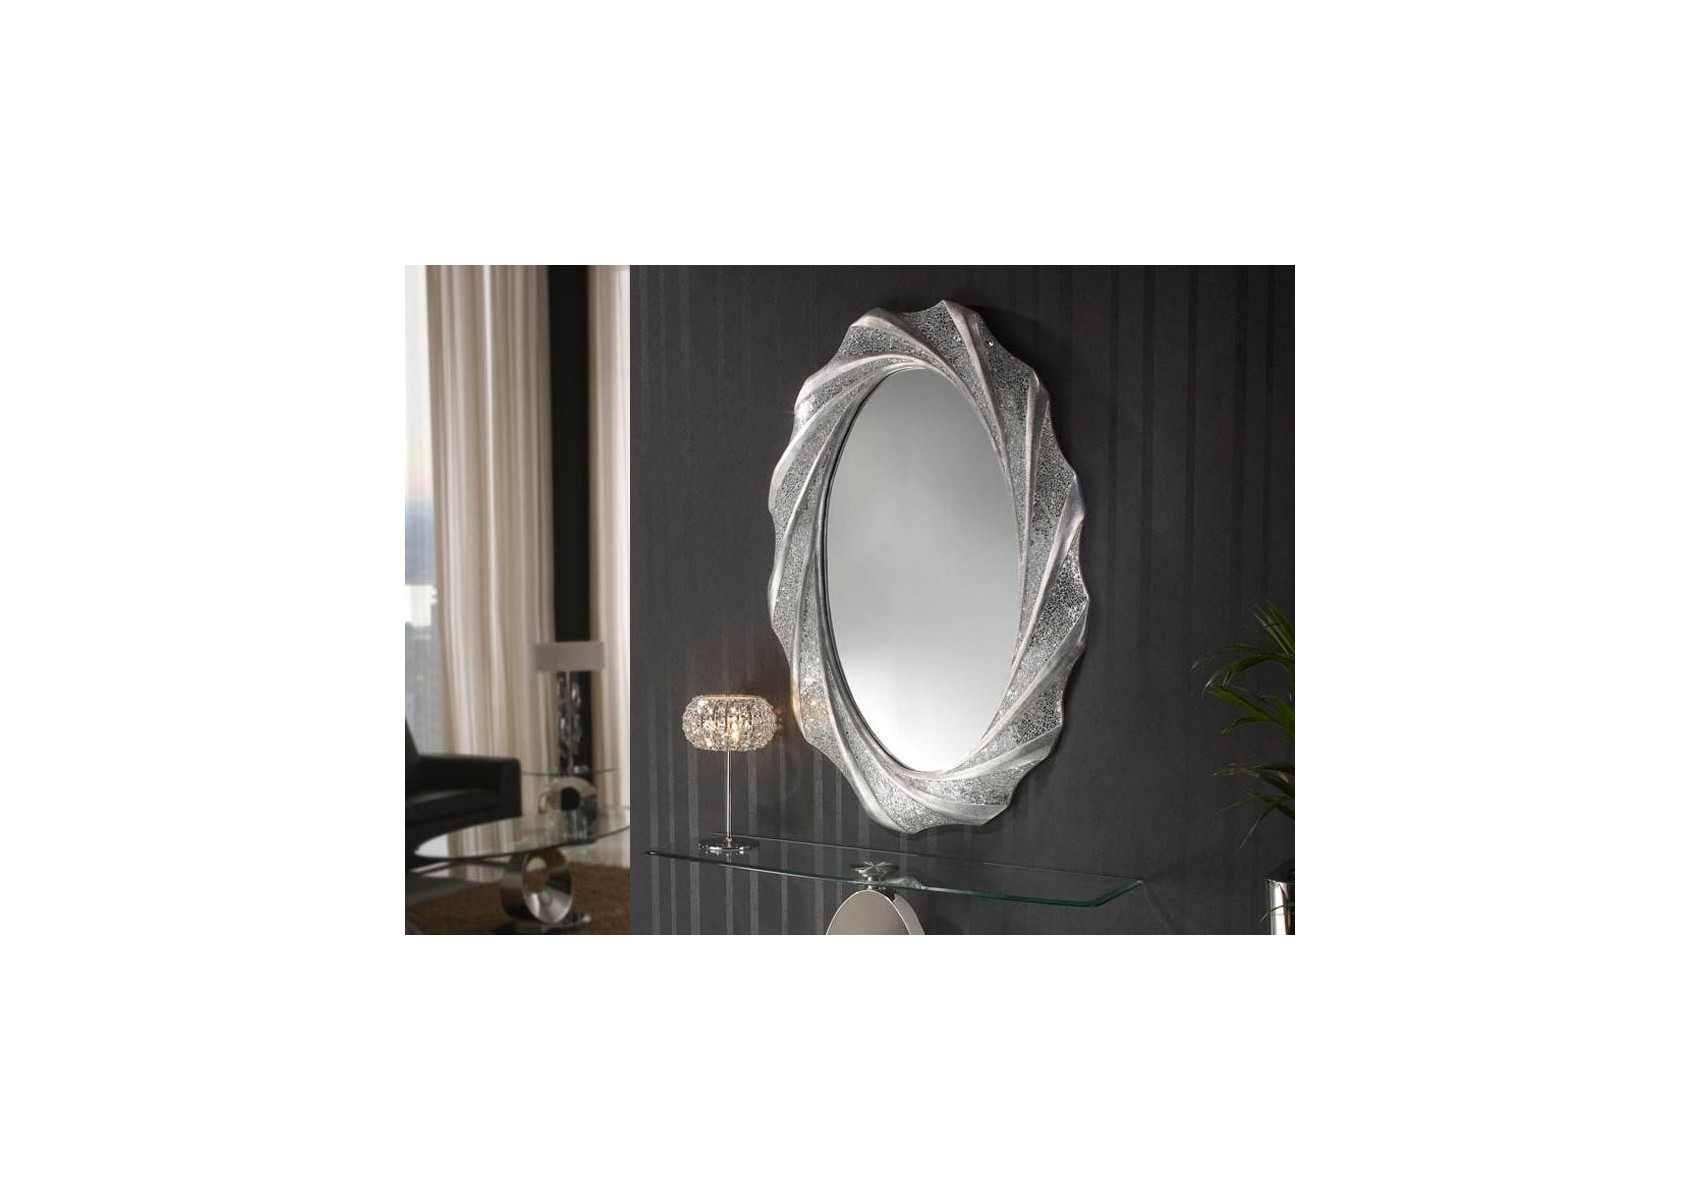 Miroir oval collection gaudi design deco schuller for Collection miroir